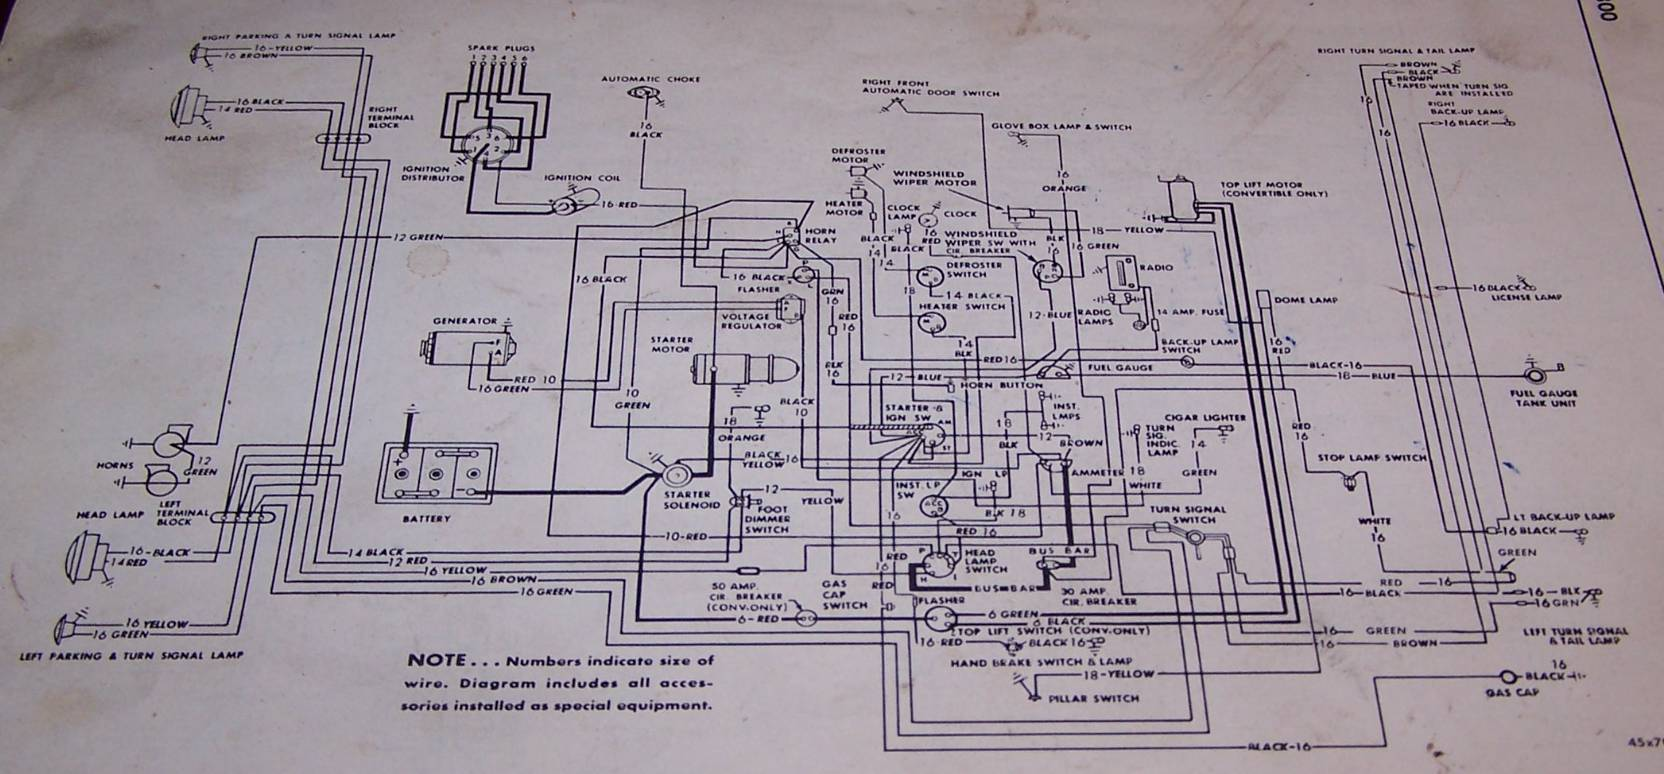 hight resolution of 1950 dodge coronet wiring diagram wiring diagram third level1950 dodge wiring diagram wiring database library 1950